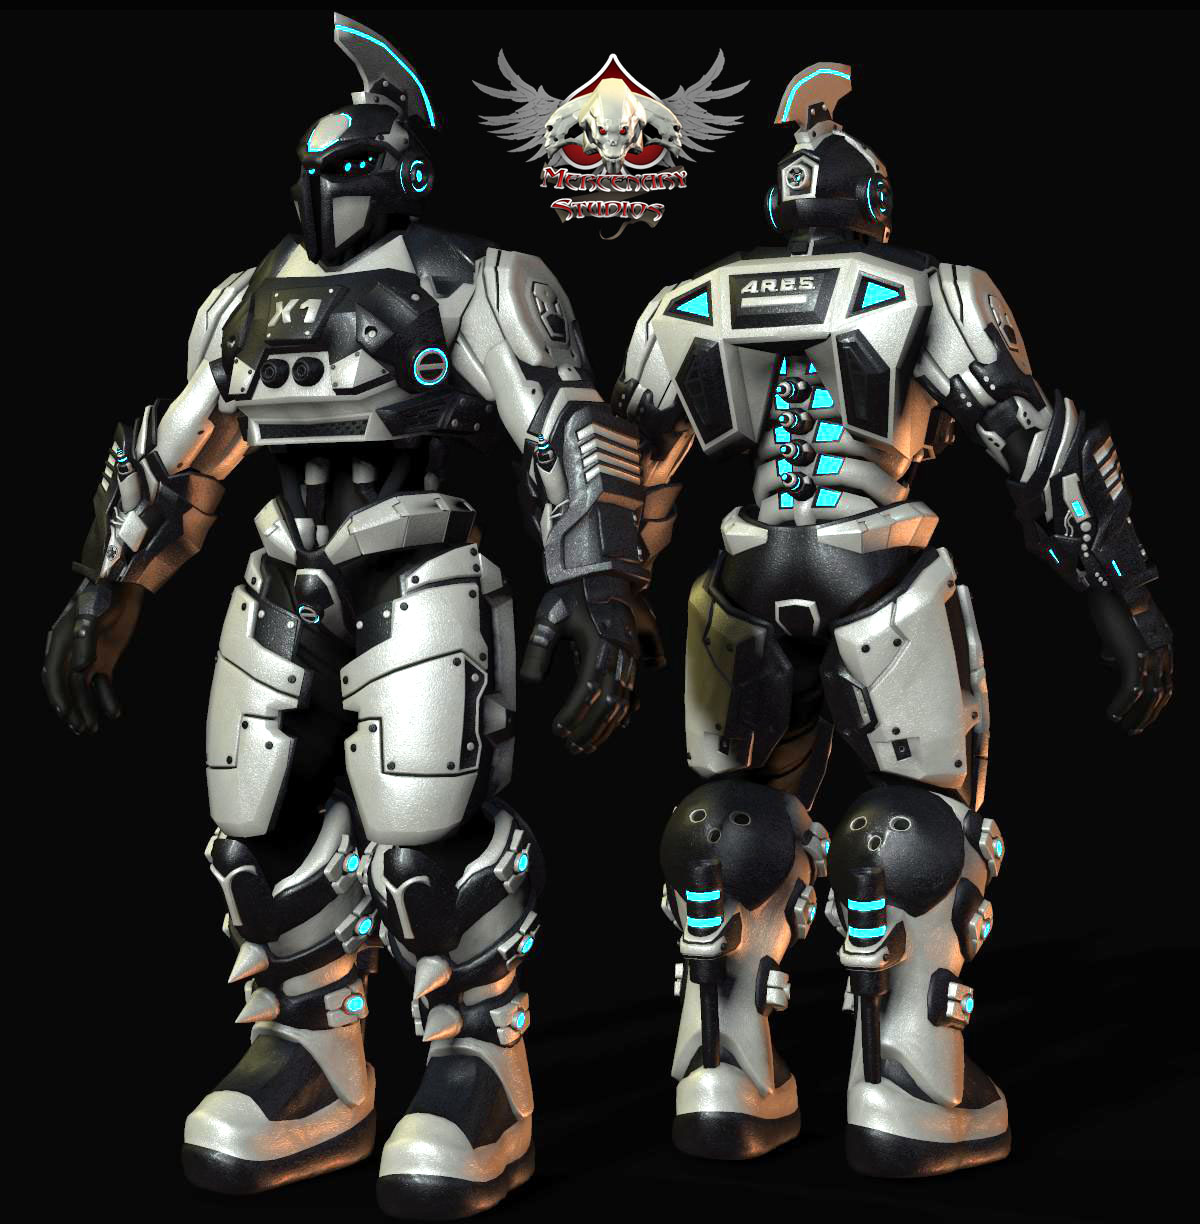 ARES Mech X1 Series